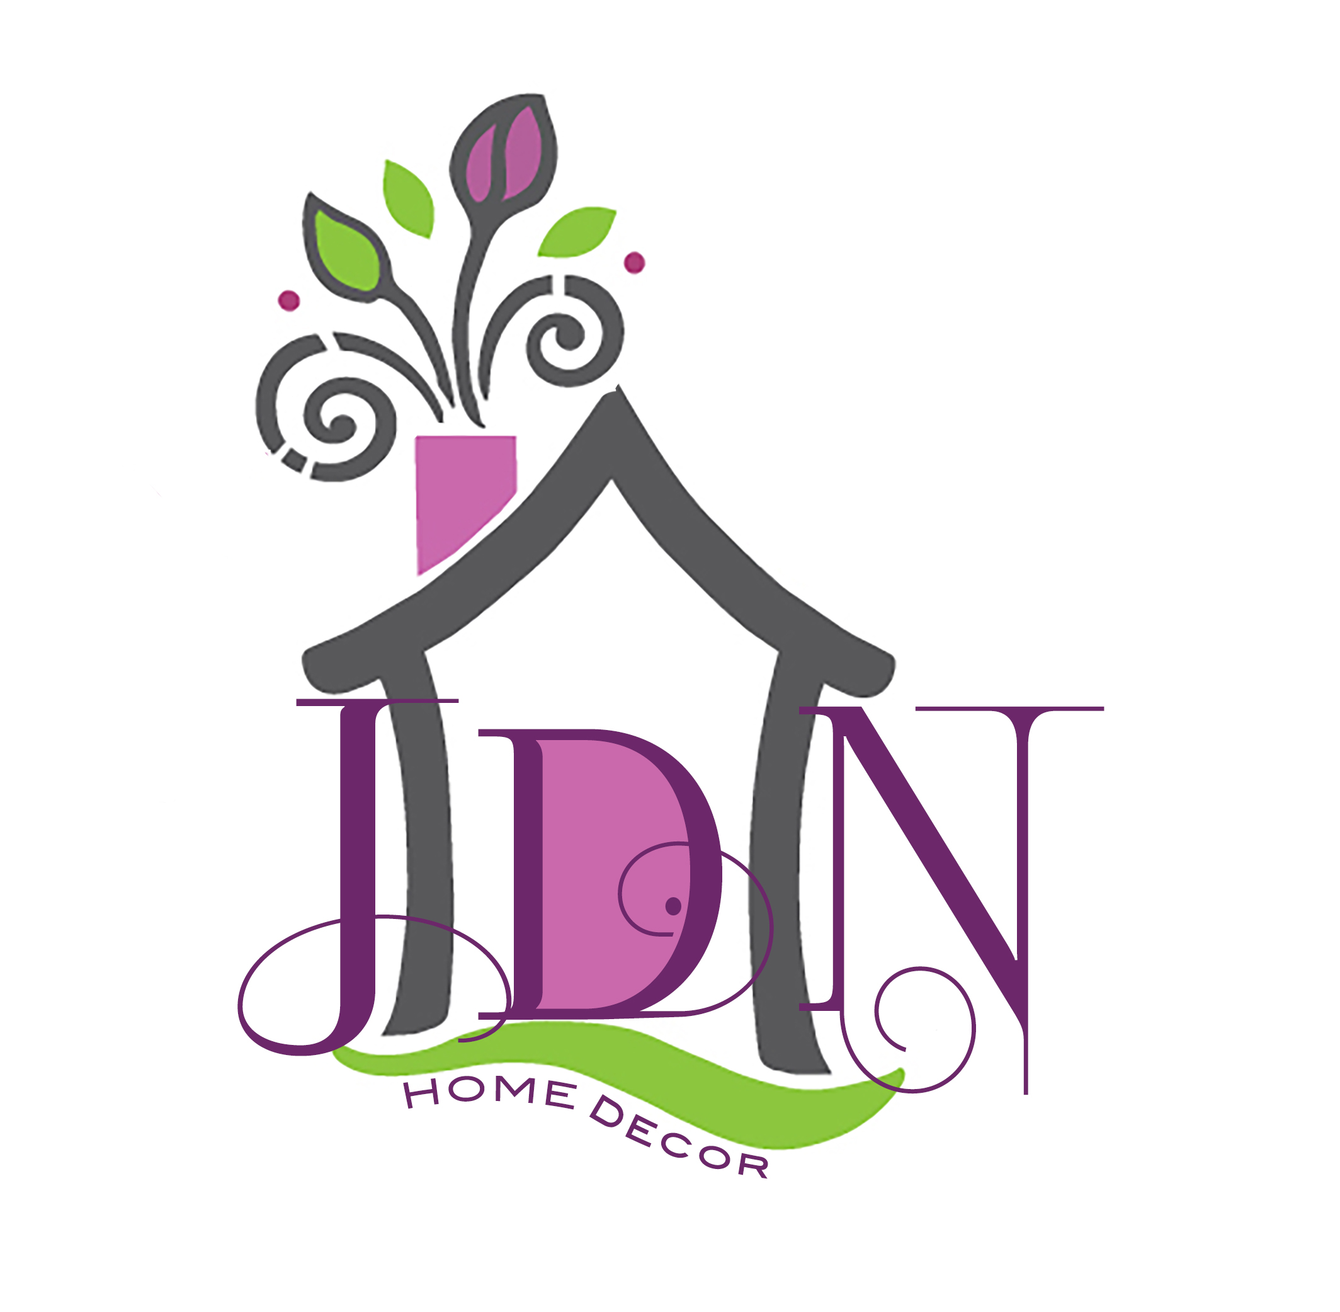 JDN Home Decor